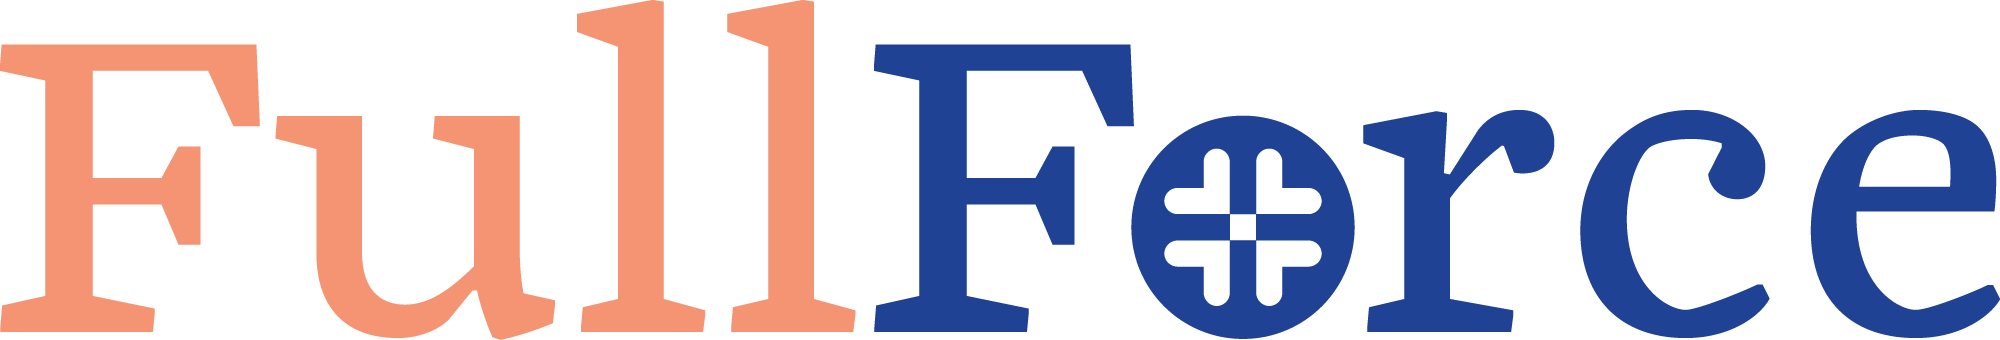 MF_FullForce_CampaignLogo_Color_2000px.png